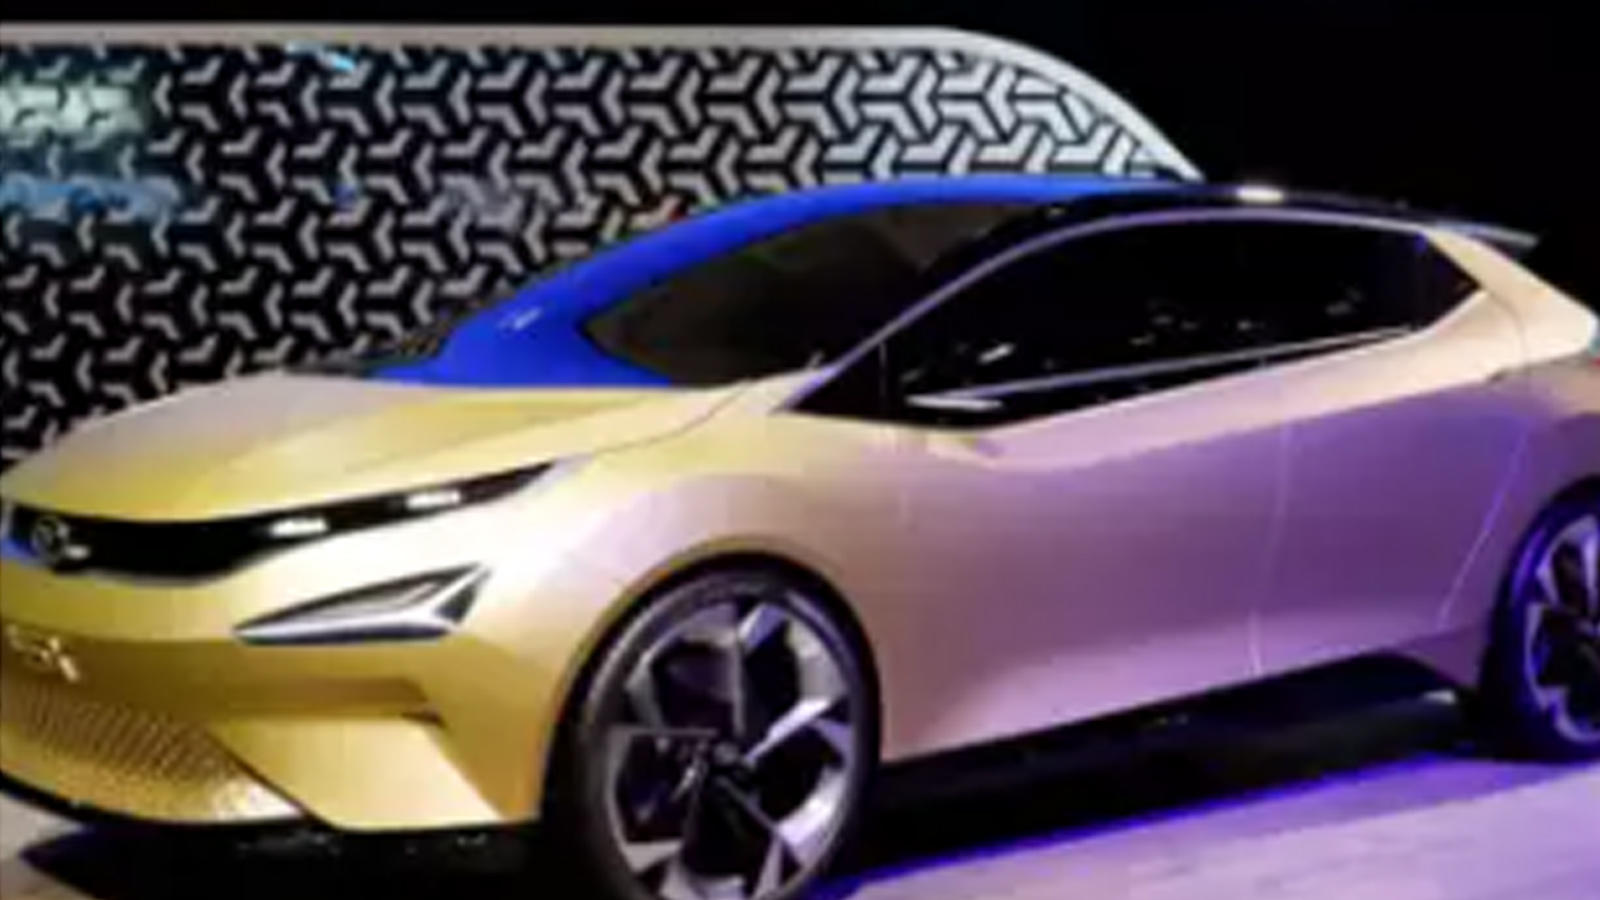 tata-motors-introduces-financial-scheme-6-month-emi-holiday-on-select-models